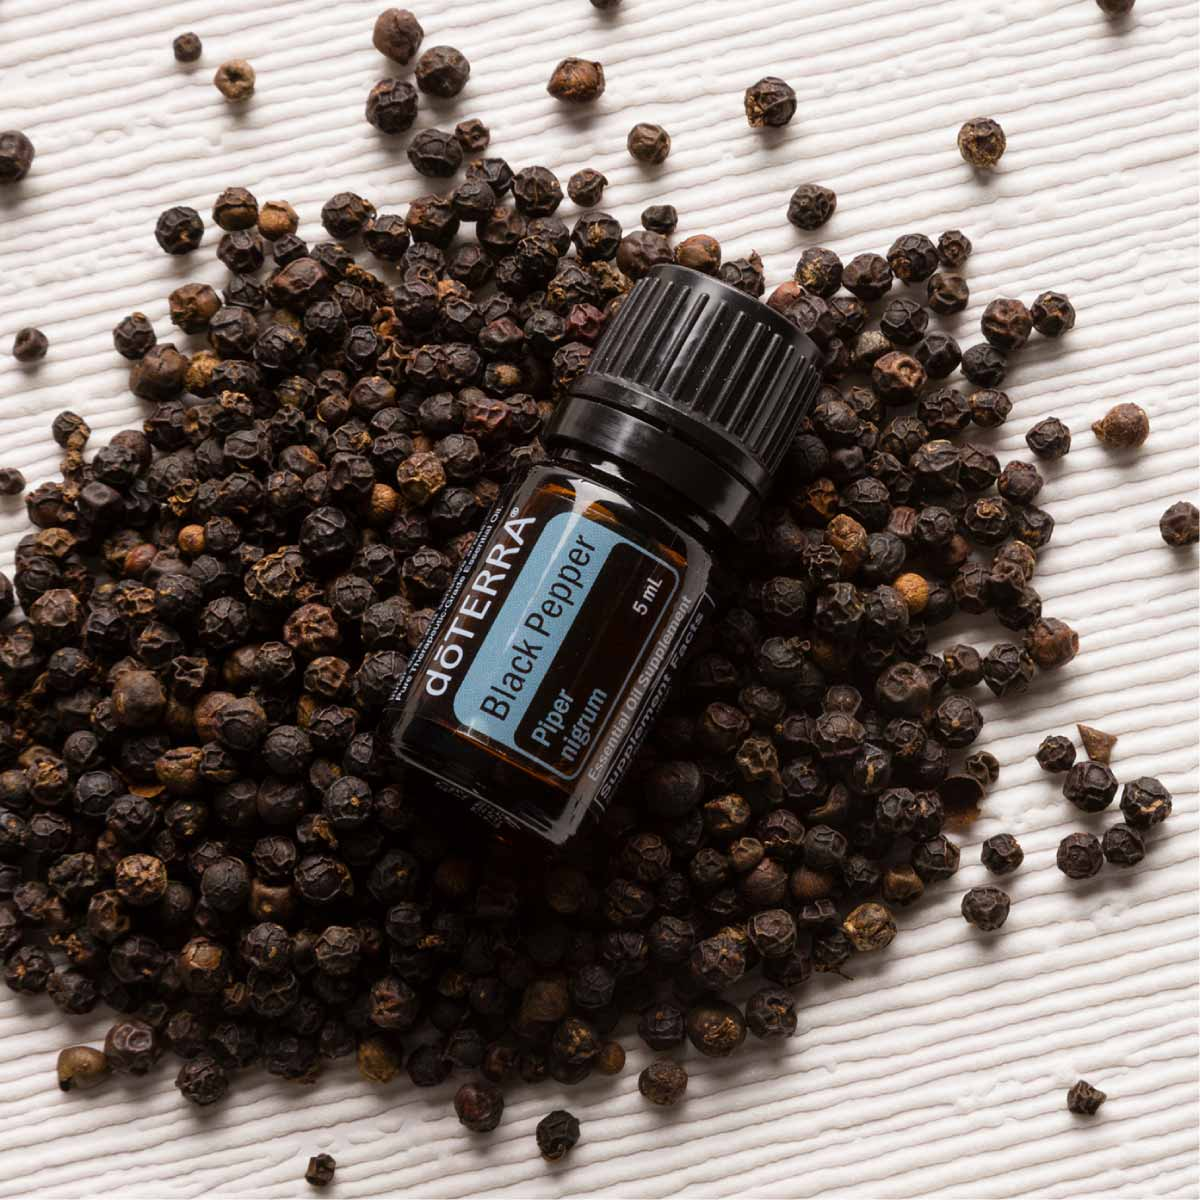 Black Pepper oil bottle and fruit from the black pepper plant. What does Black Pepper essential oil smell like? The aroma of Black Pepper oil can be described as a sharp scent that is hot or spicy, with a few fruity notes.